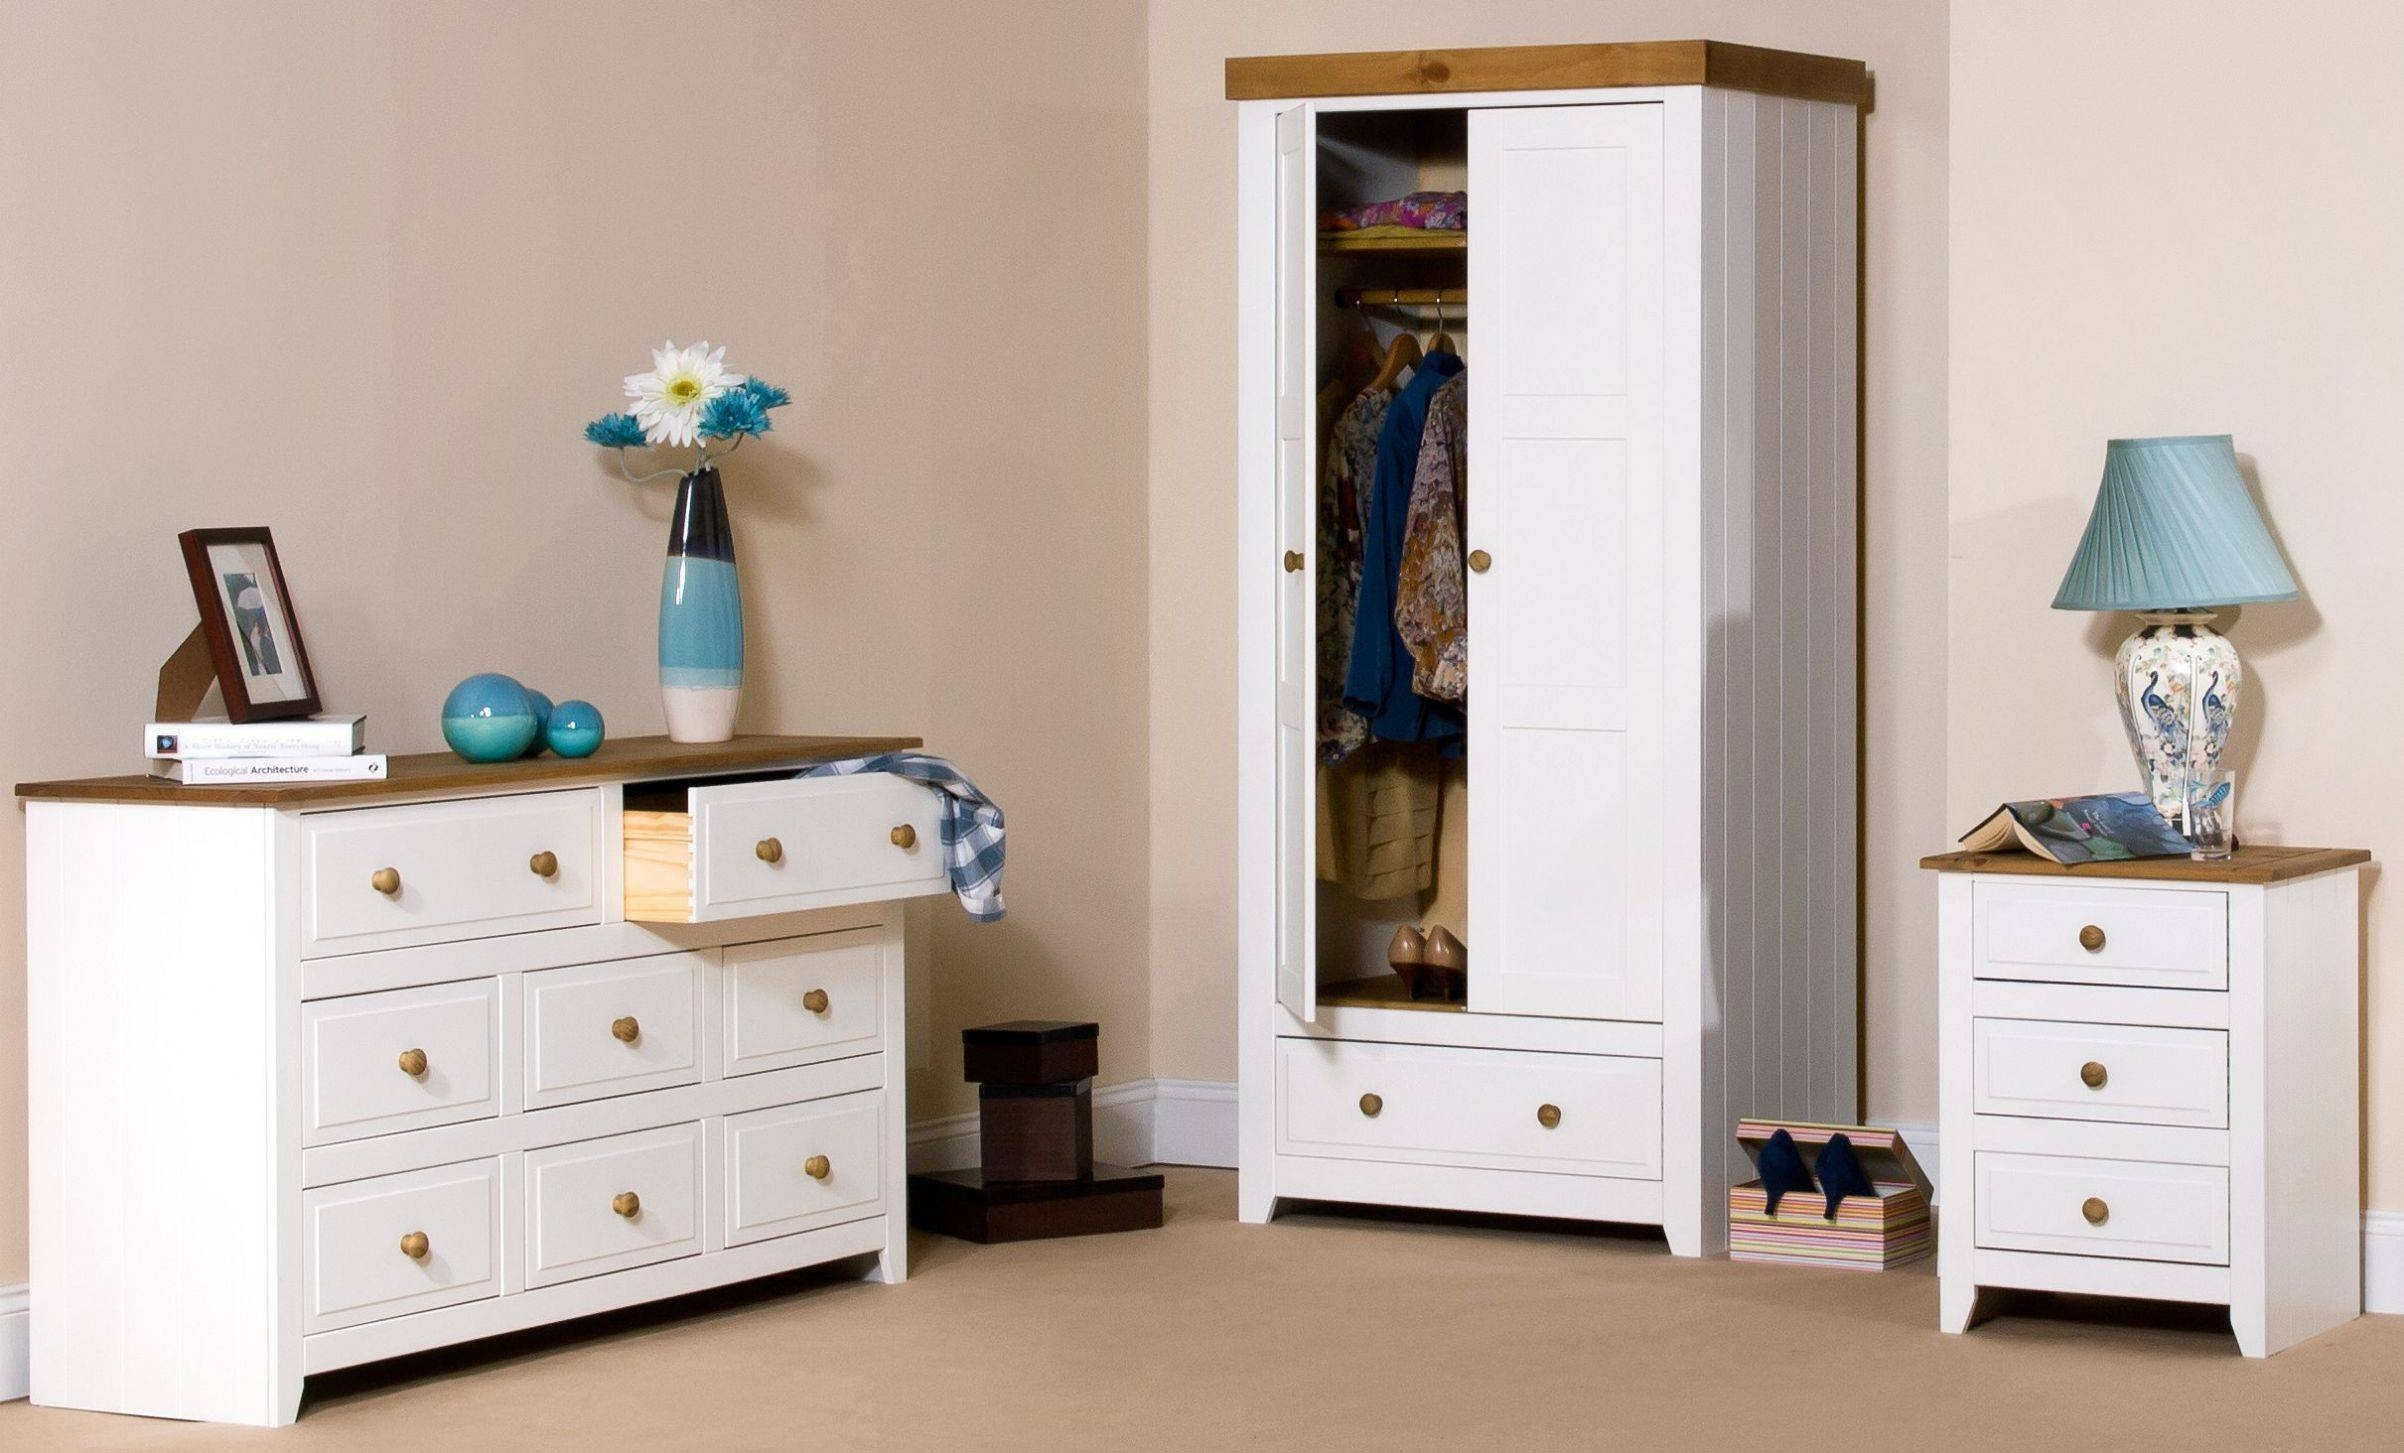 Bedroom Ideas. White Stained Oak Wood Wardrobe With Drawer pertaining to White Wood Wardrobes With Drawers (Image 2 of 15)